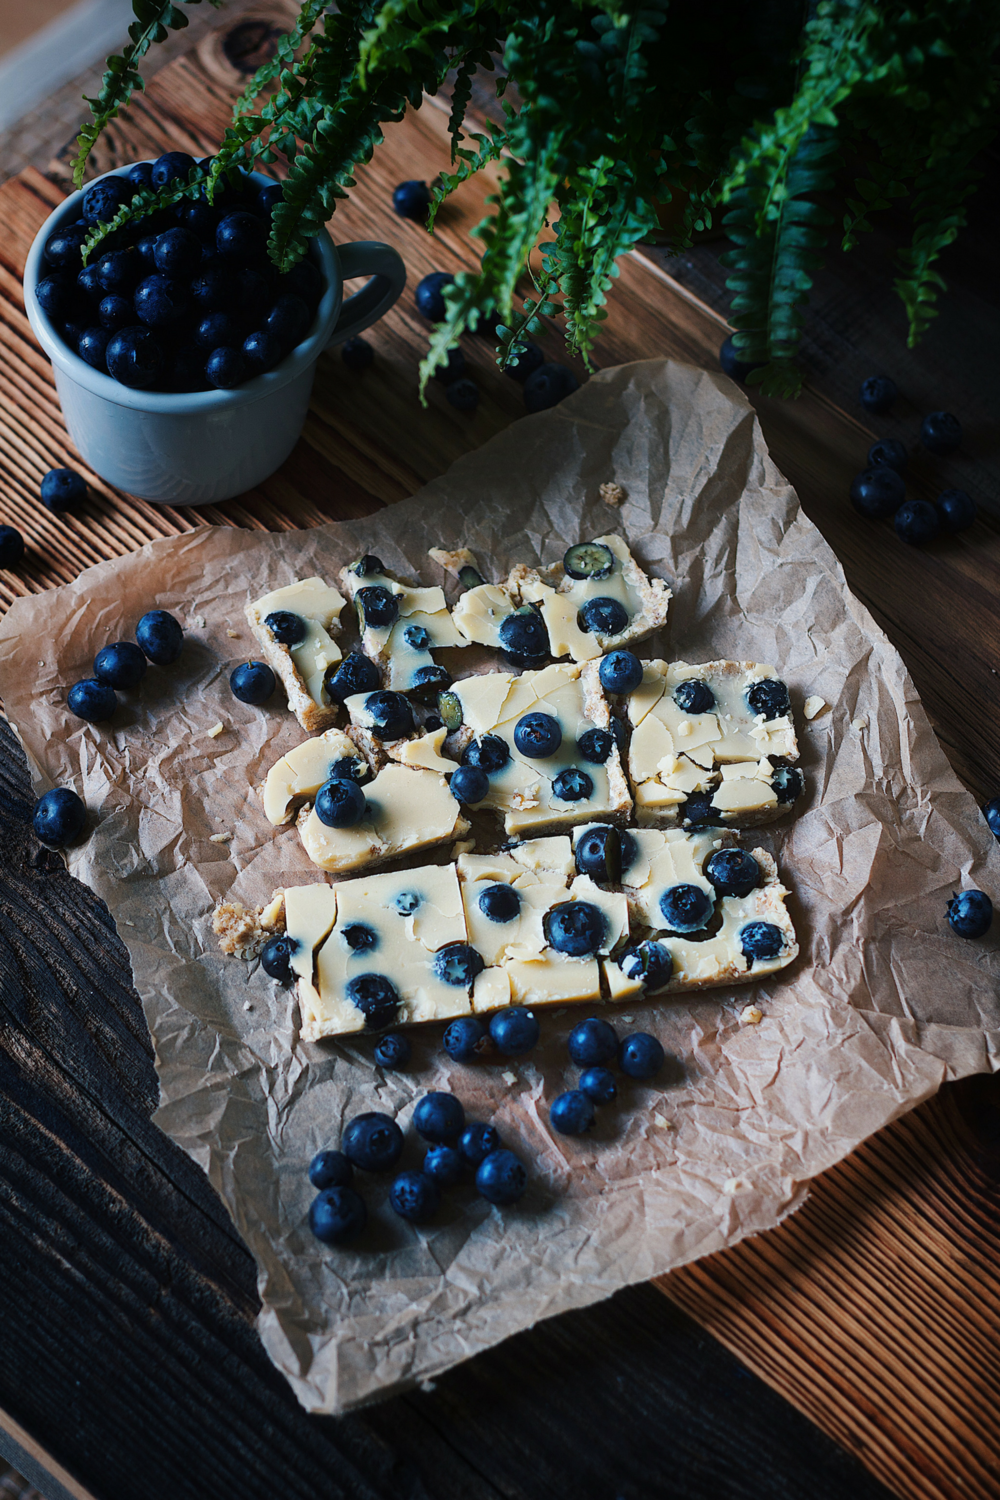 Homemade White Chocolate with Blueberries - sweetened with Dates